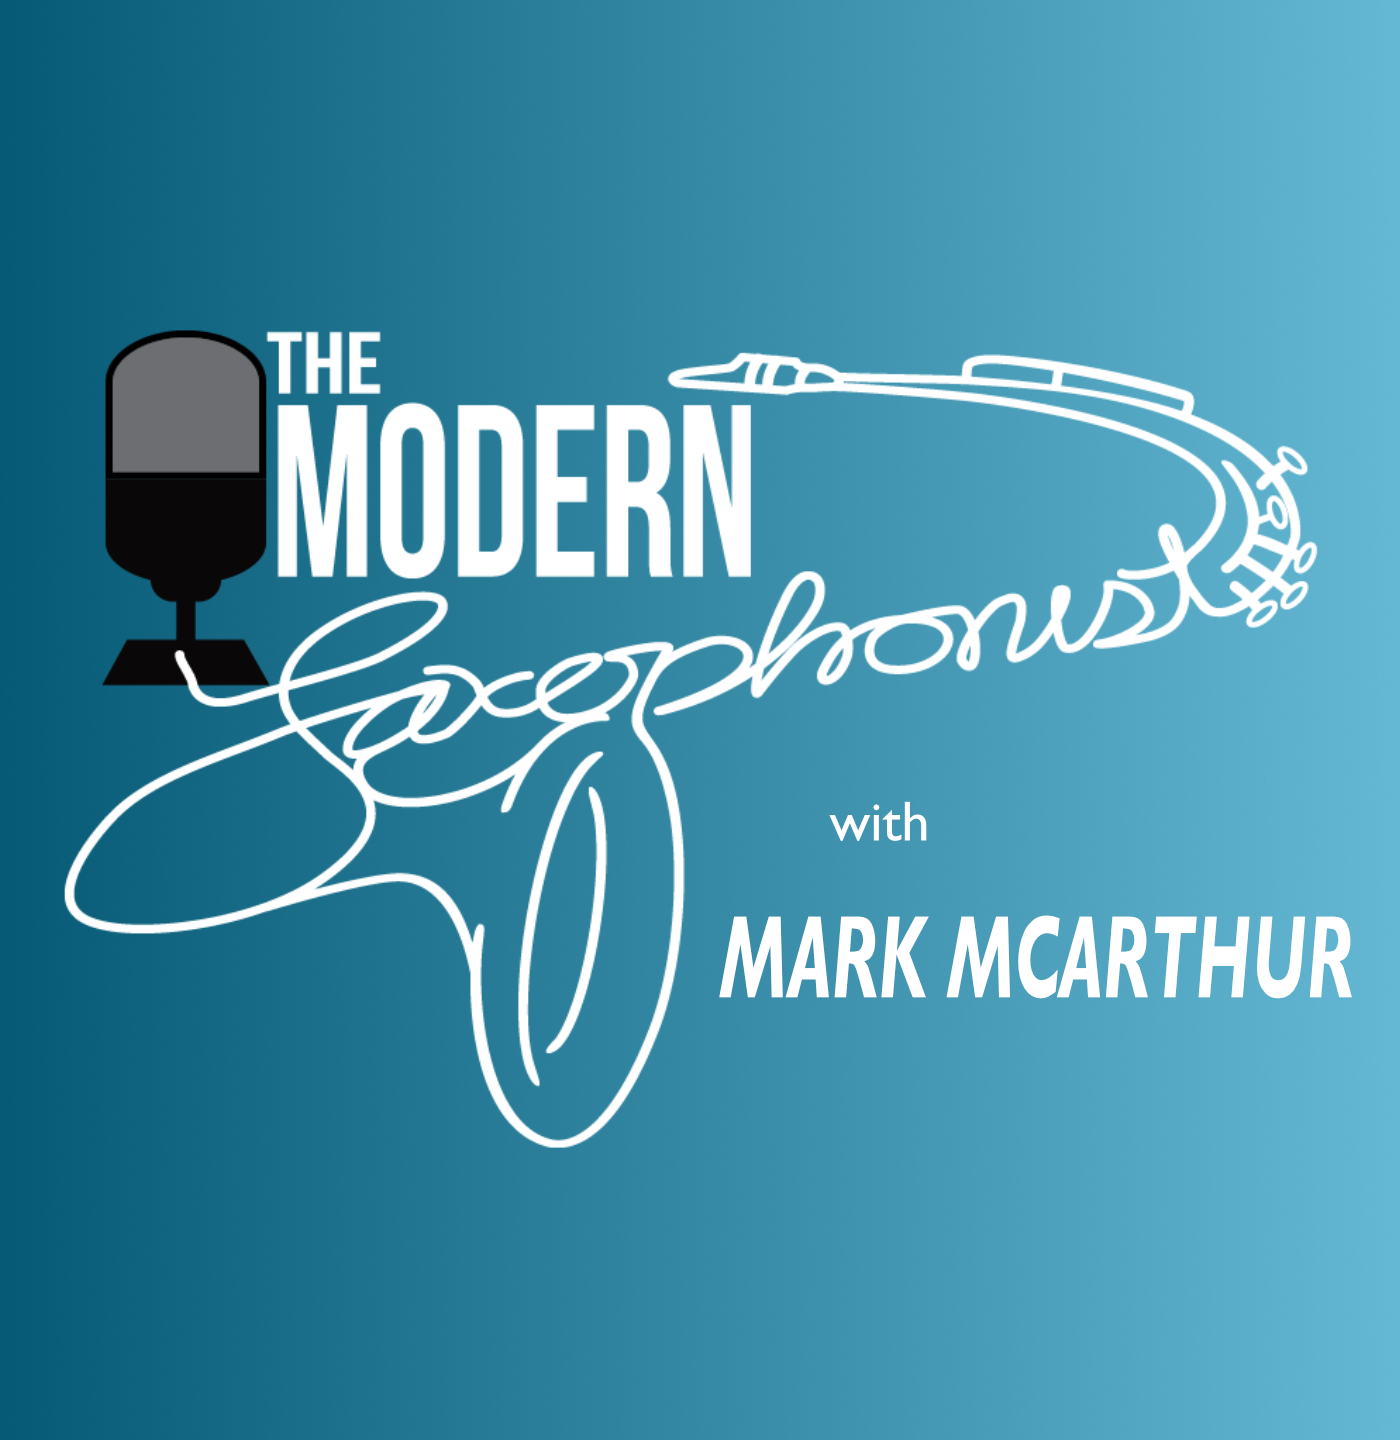 The Modern Saxophonist Podcast show art